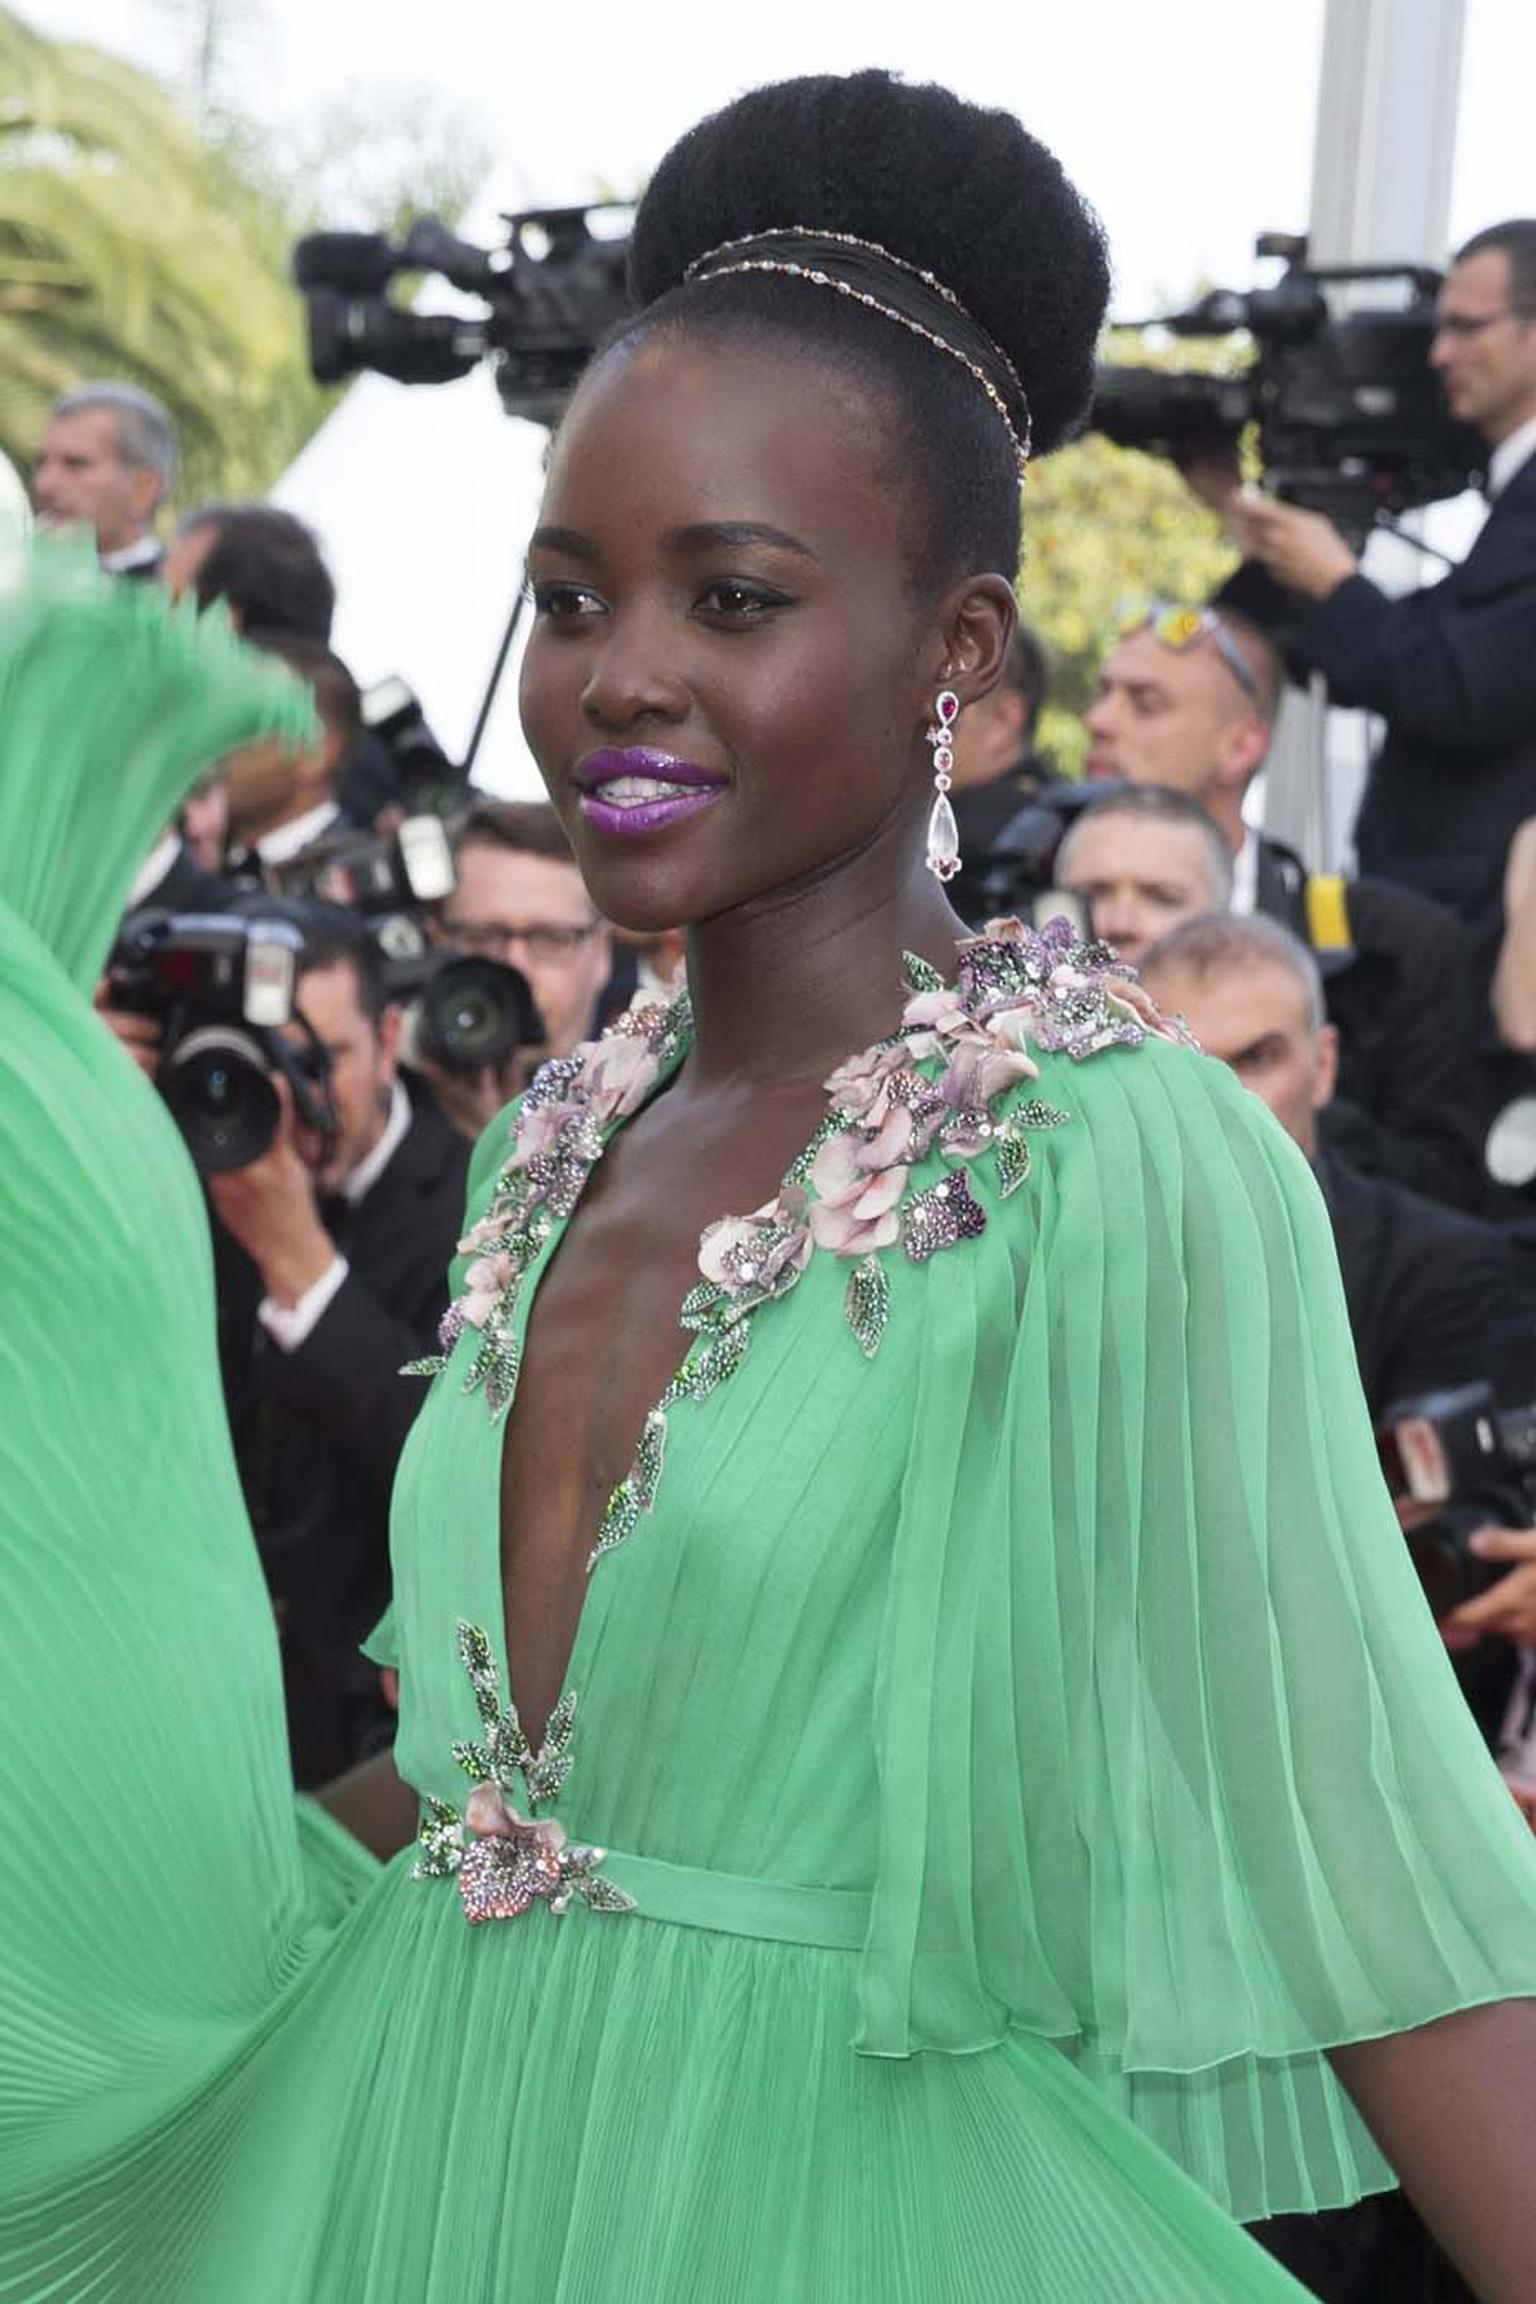 Oscar-winning actress Lupita Nyong'o stepped onto the red carpet of the 68th annual Cannes Film Festival wearing a swirling mint green Gucci gown, accessorised with a pair of Chopard Red Carpet collection diamond drop earrings.